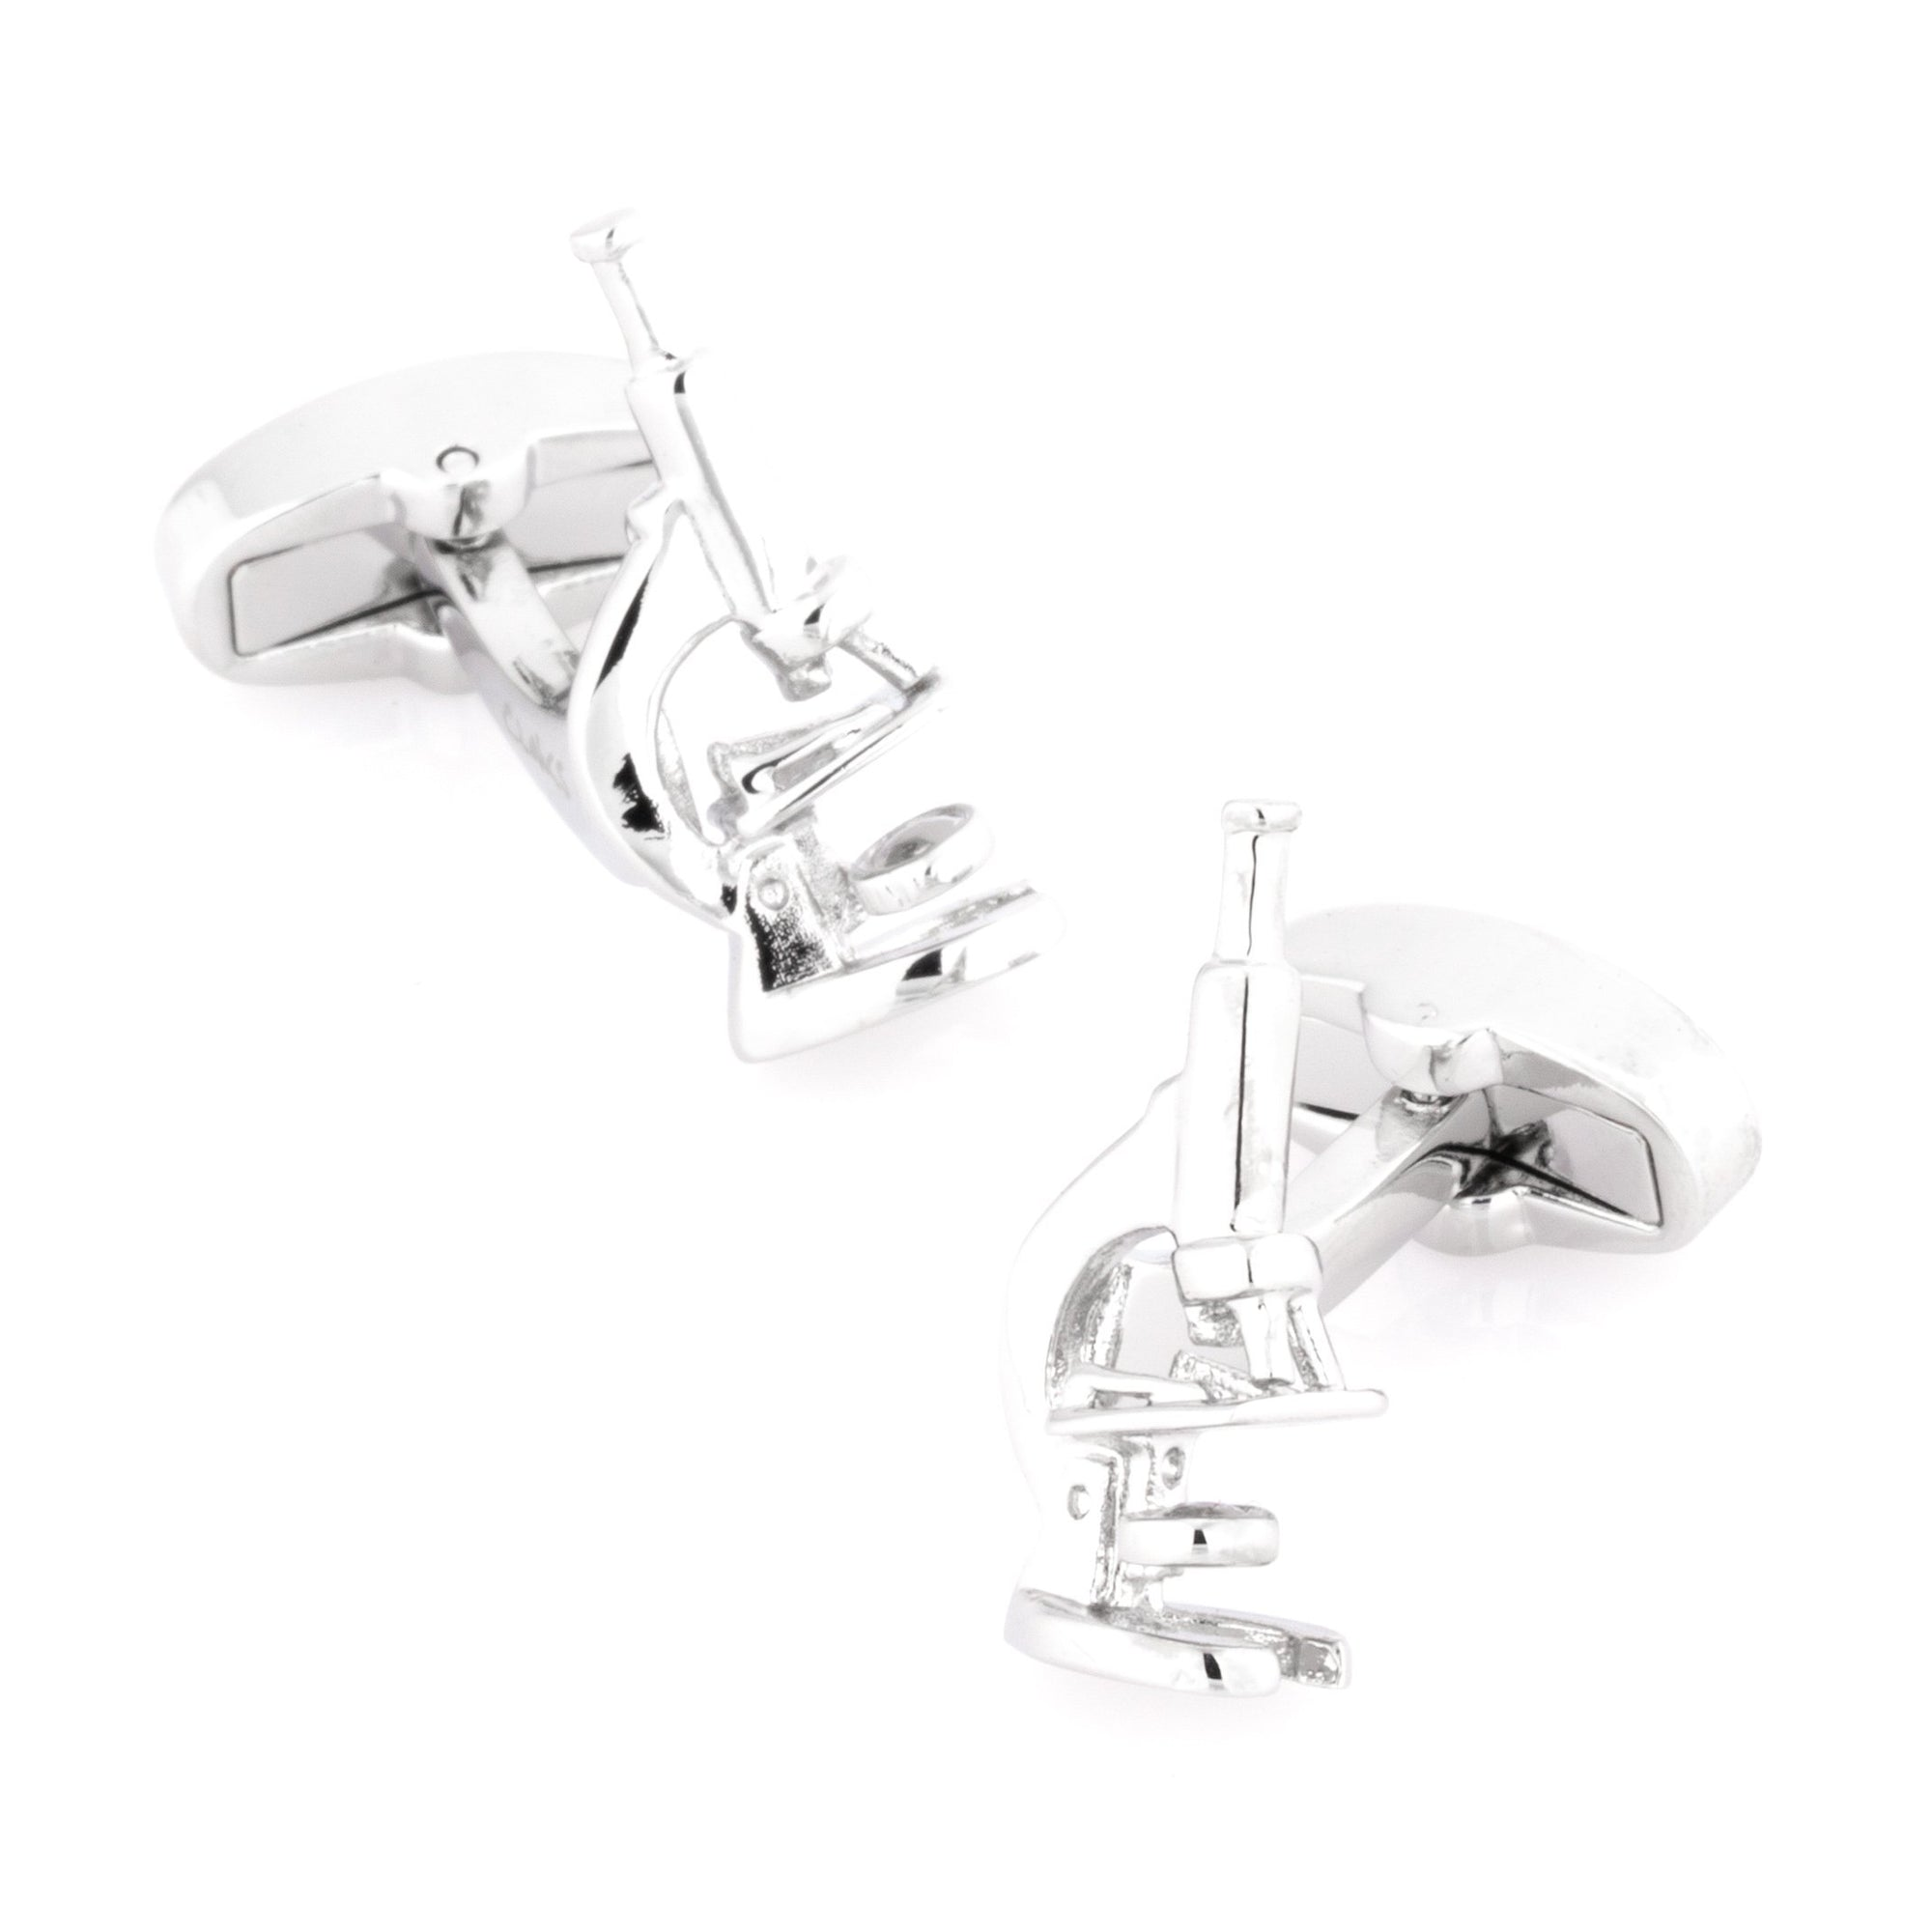 Scientist Microscope Cufflinks Novelty Cufflinks Clinks Australia Scientist Microscope Cufflinks